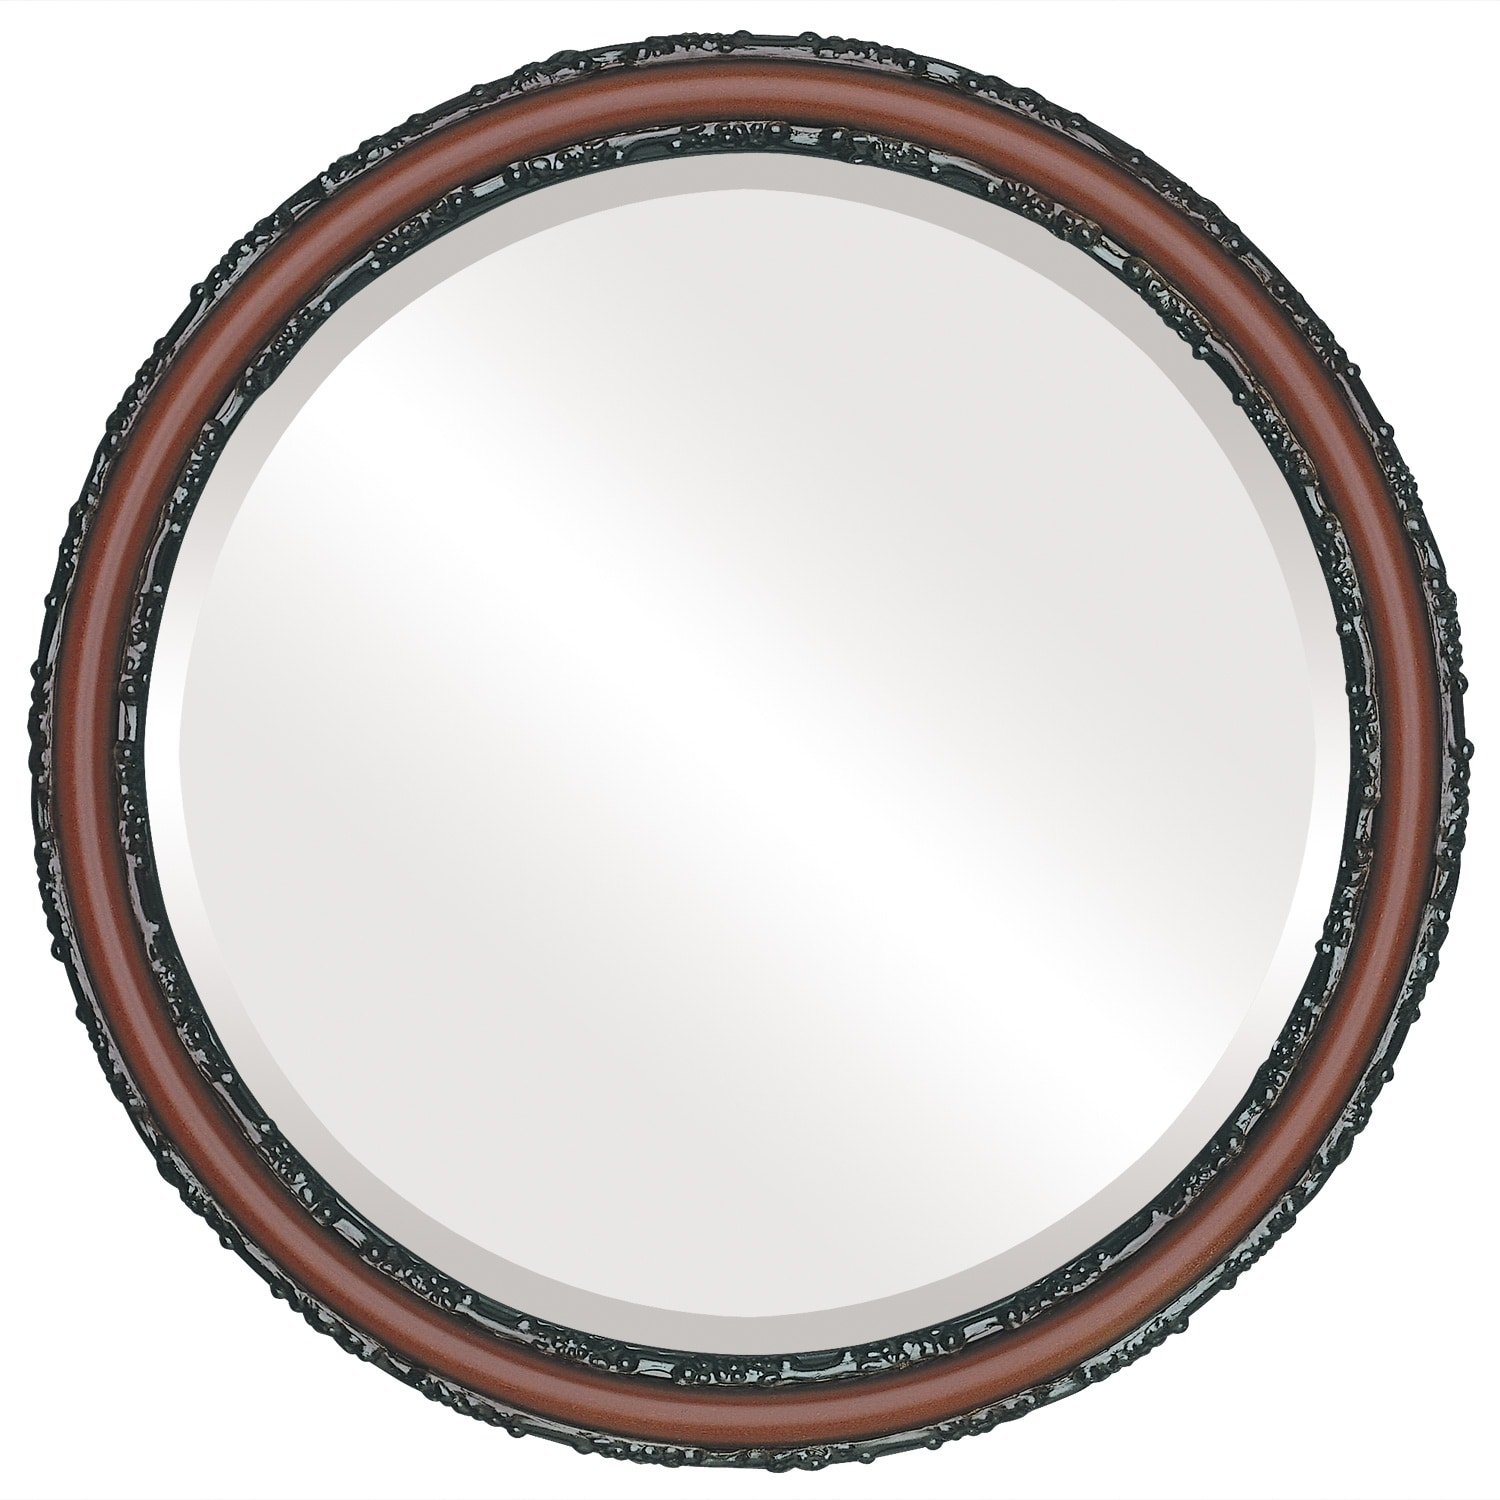 Virginia Framed Round Mirror in Rosewood - Red (25x25)